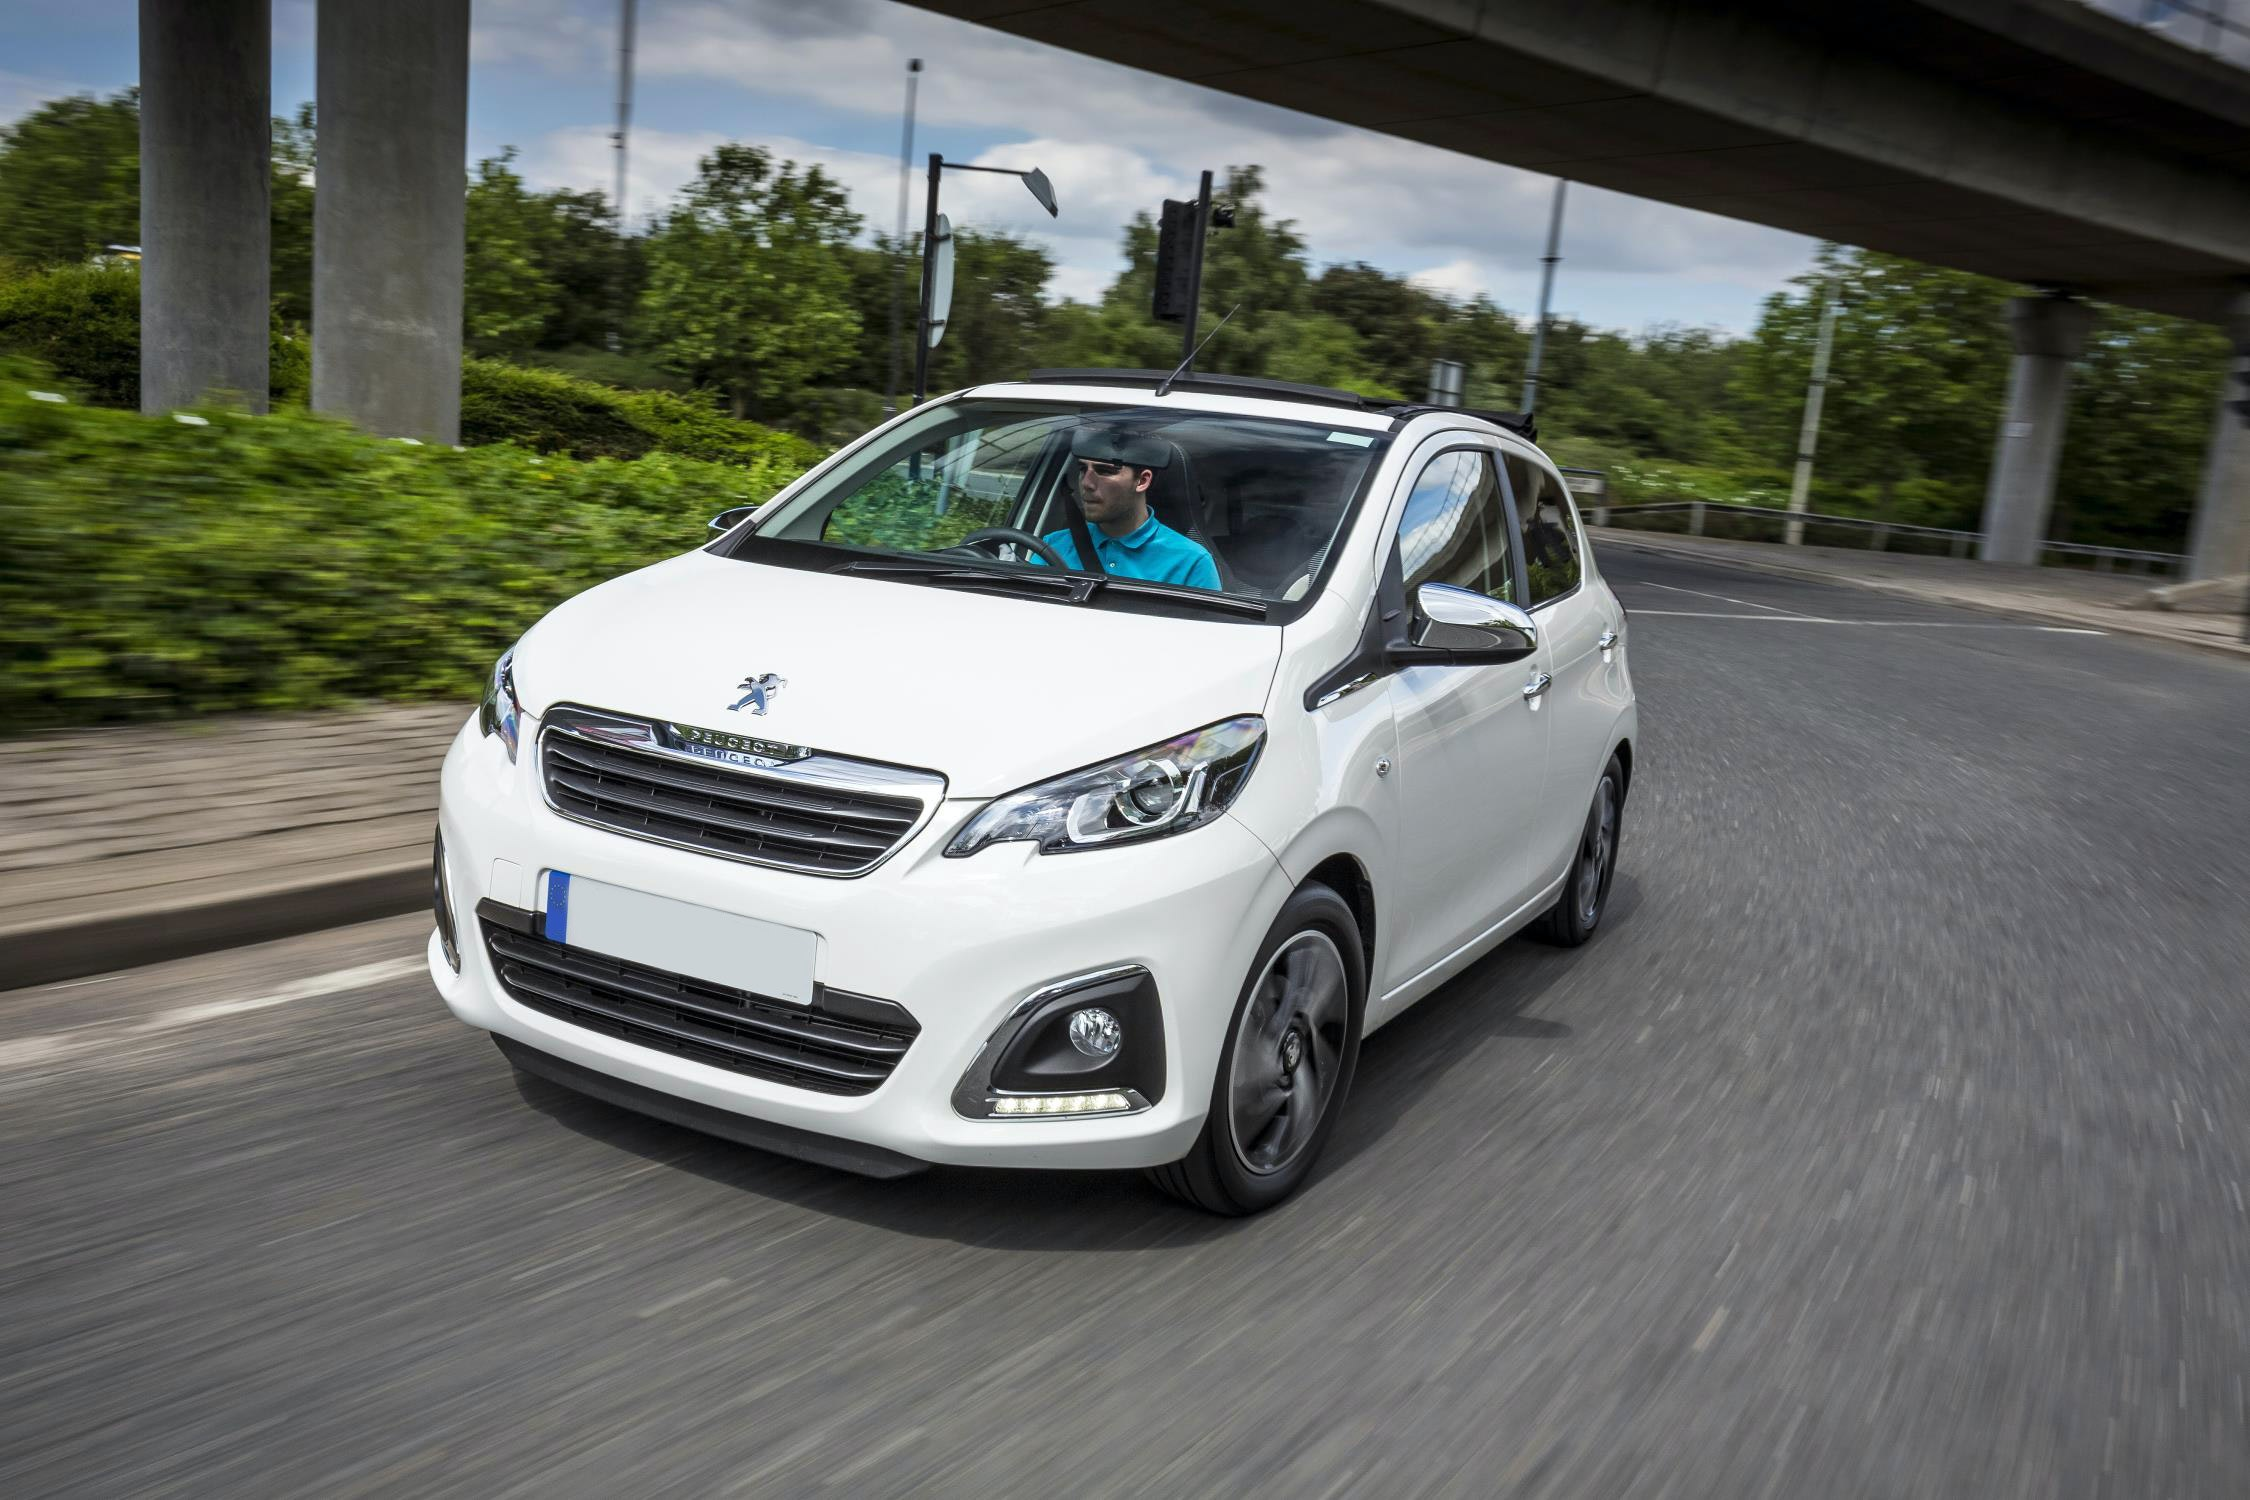 New Peugeot 108 Review | carwow